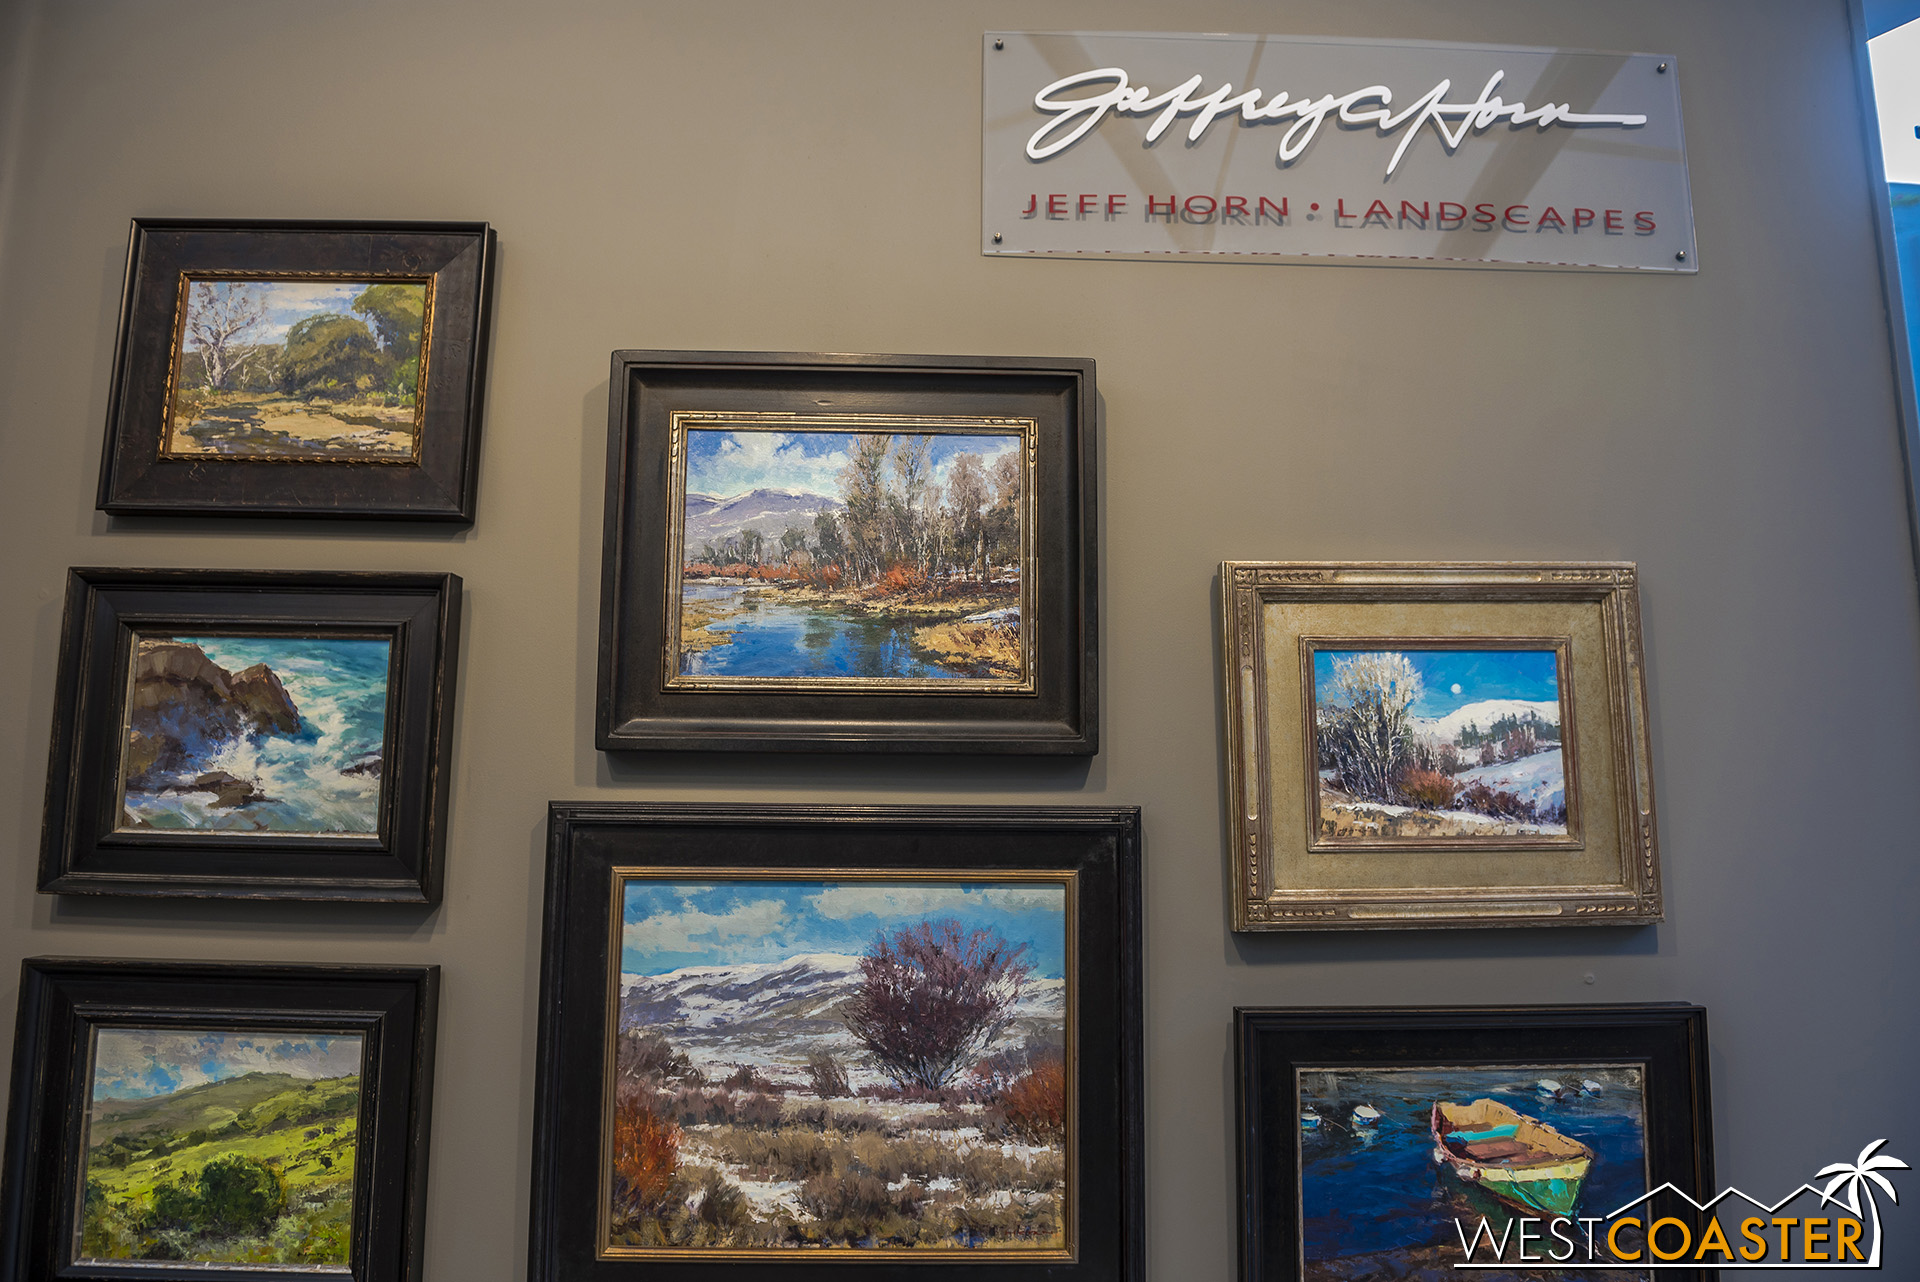 Jeff Horn has been painting landscapes for decades.